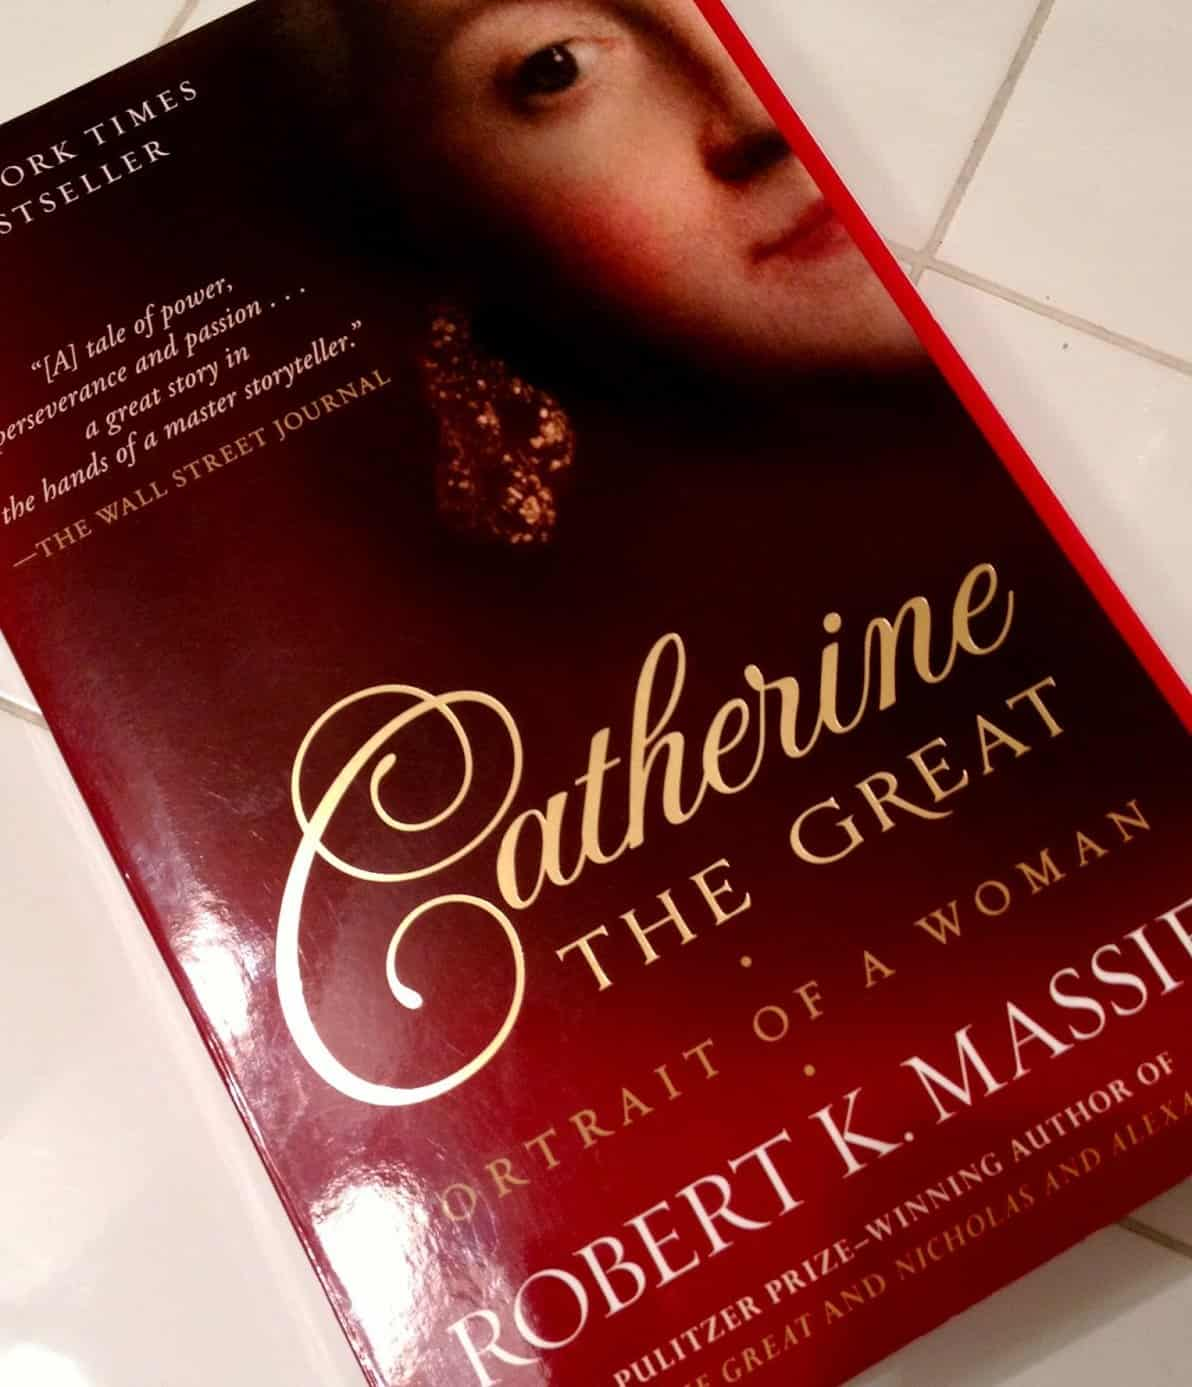 Catherine the Great: Portrait of a Woman – best biography